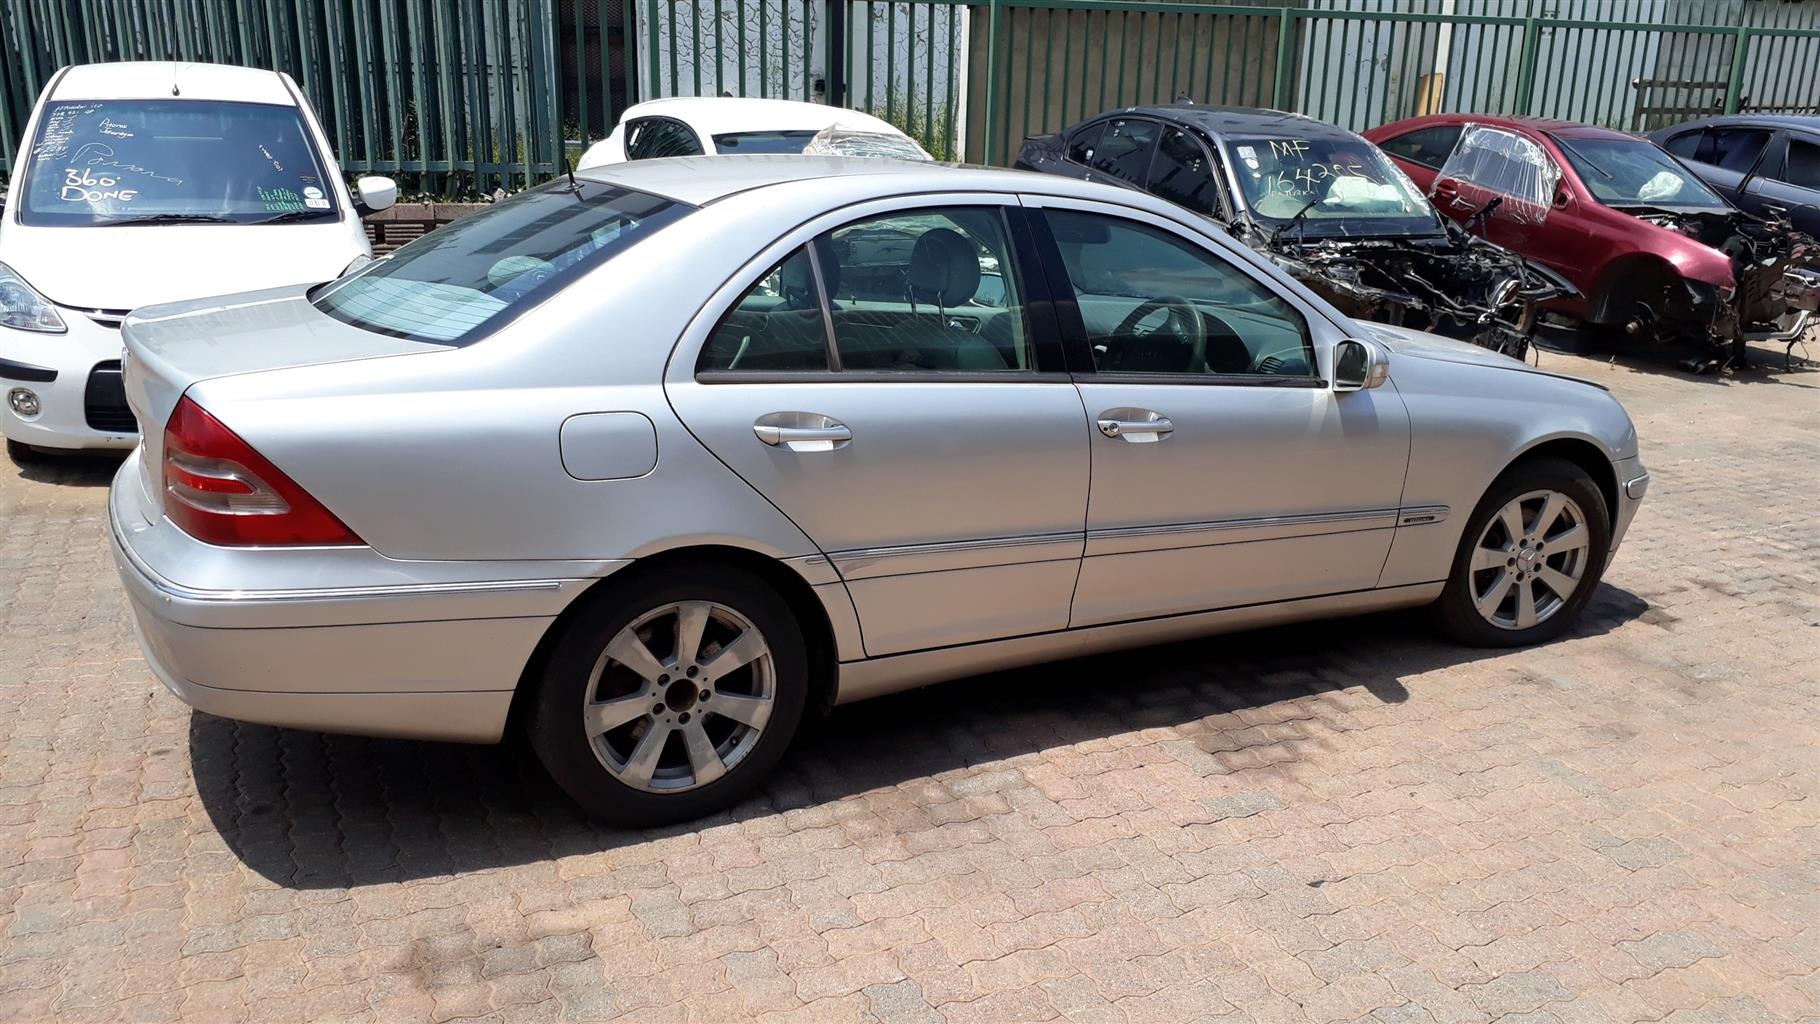 C320 W203 MERCEDES STRIPPING FOR SPARES